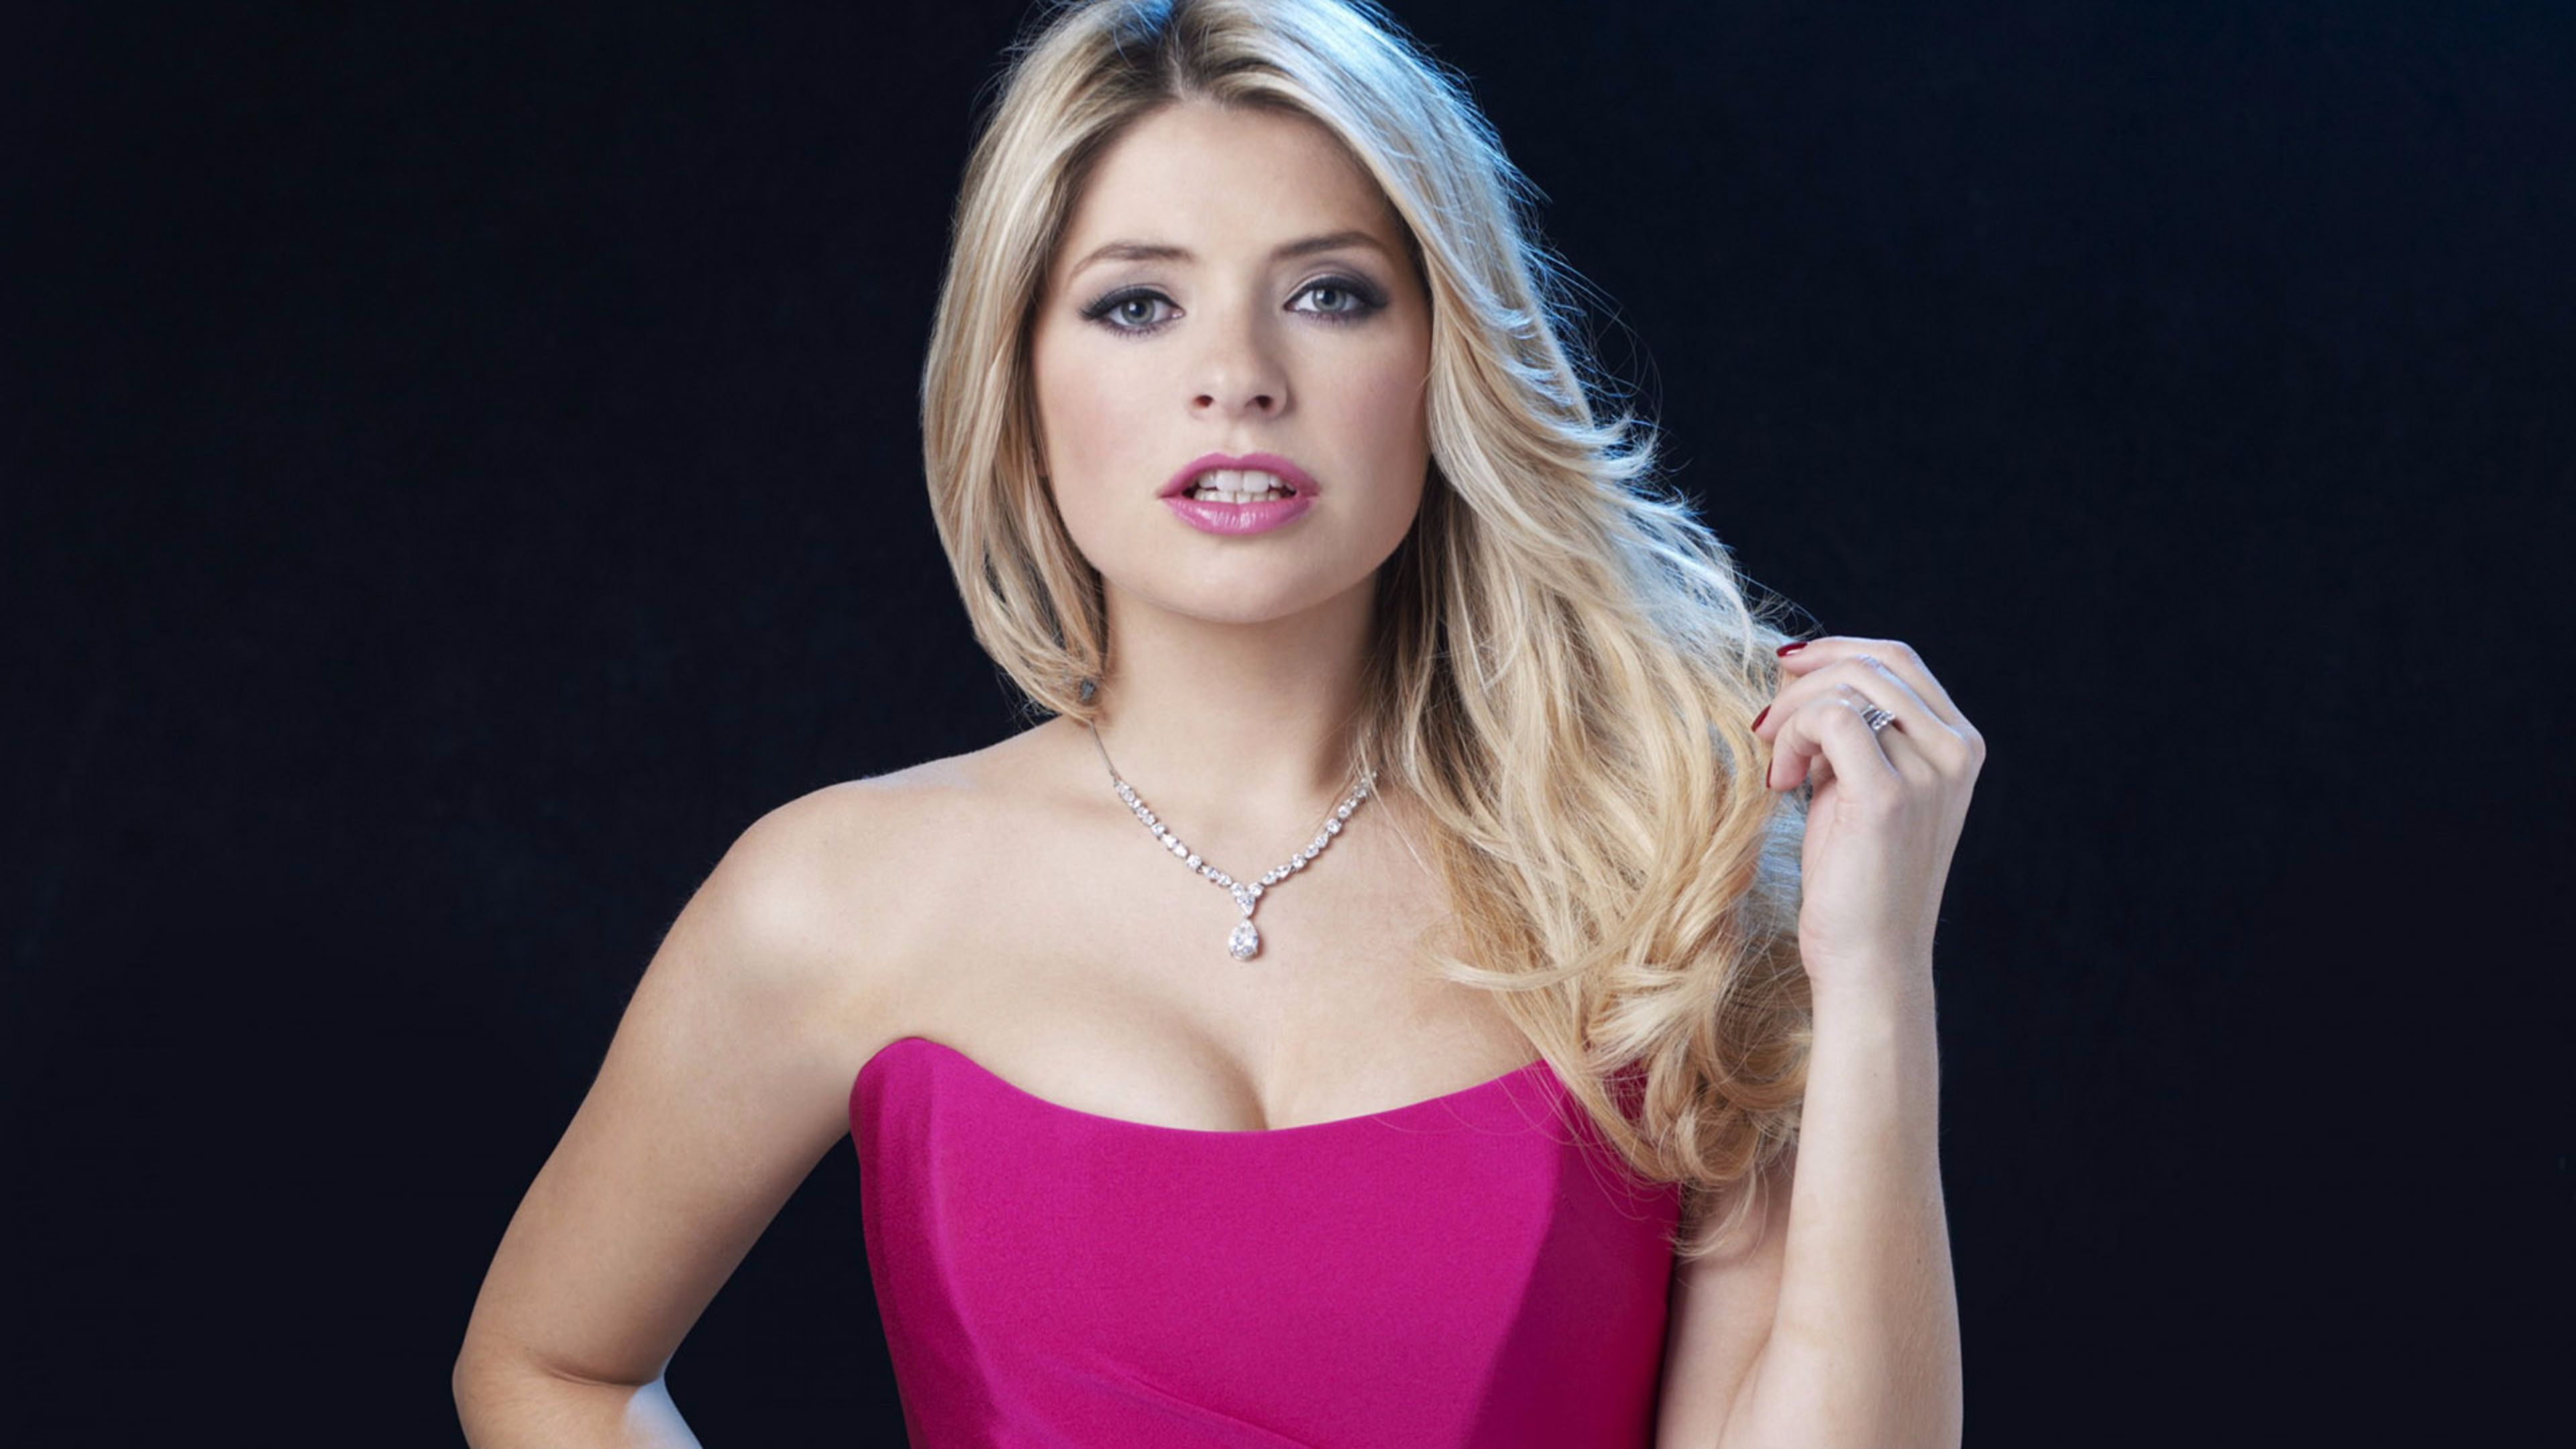 3840x2160 - Holly Willoughby Wallpapers 1